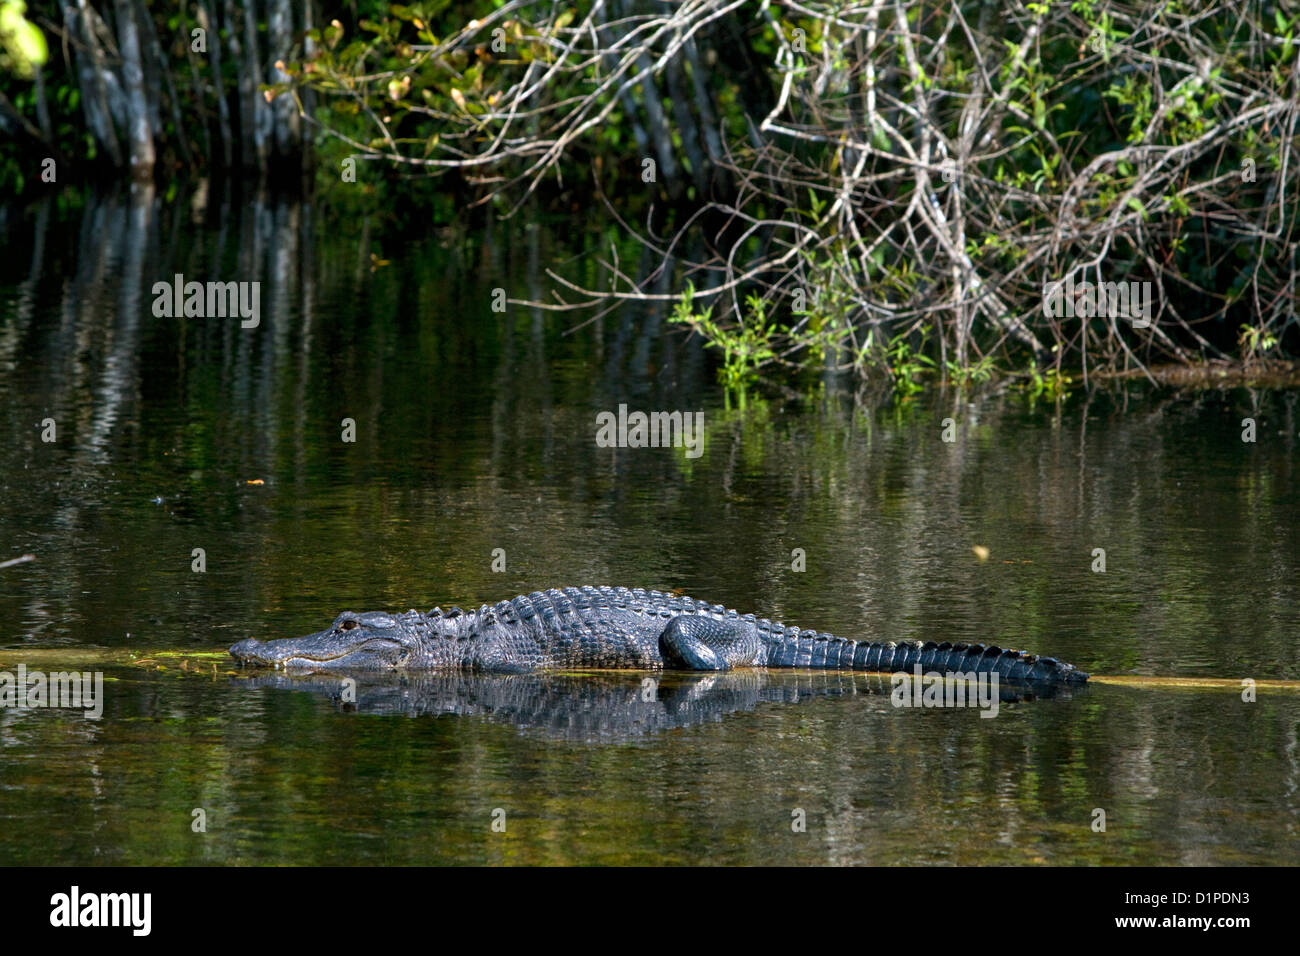 American Alligator in the Florida everglades. - Stock Image